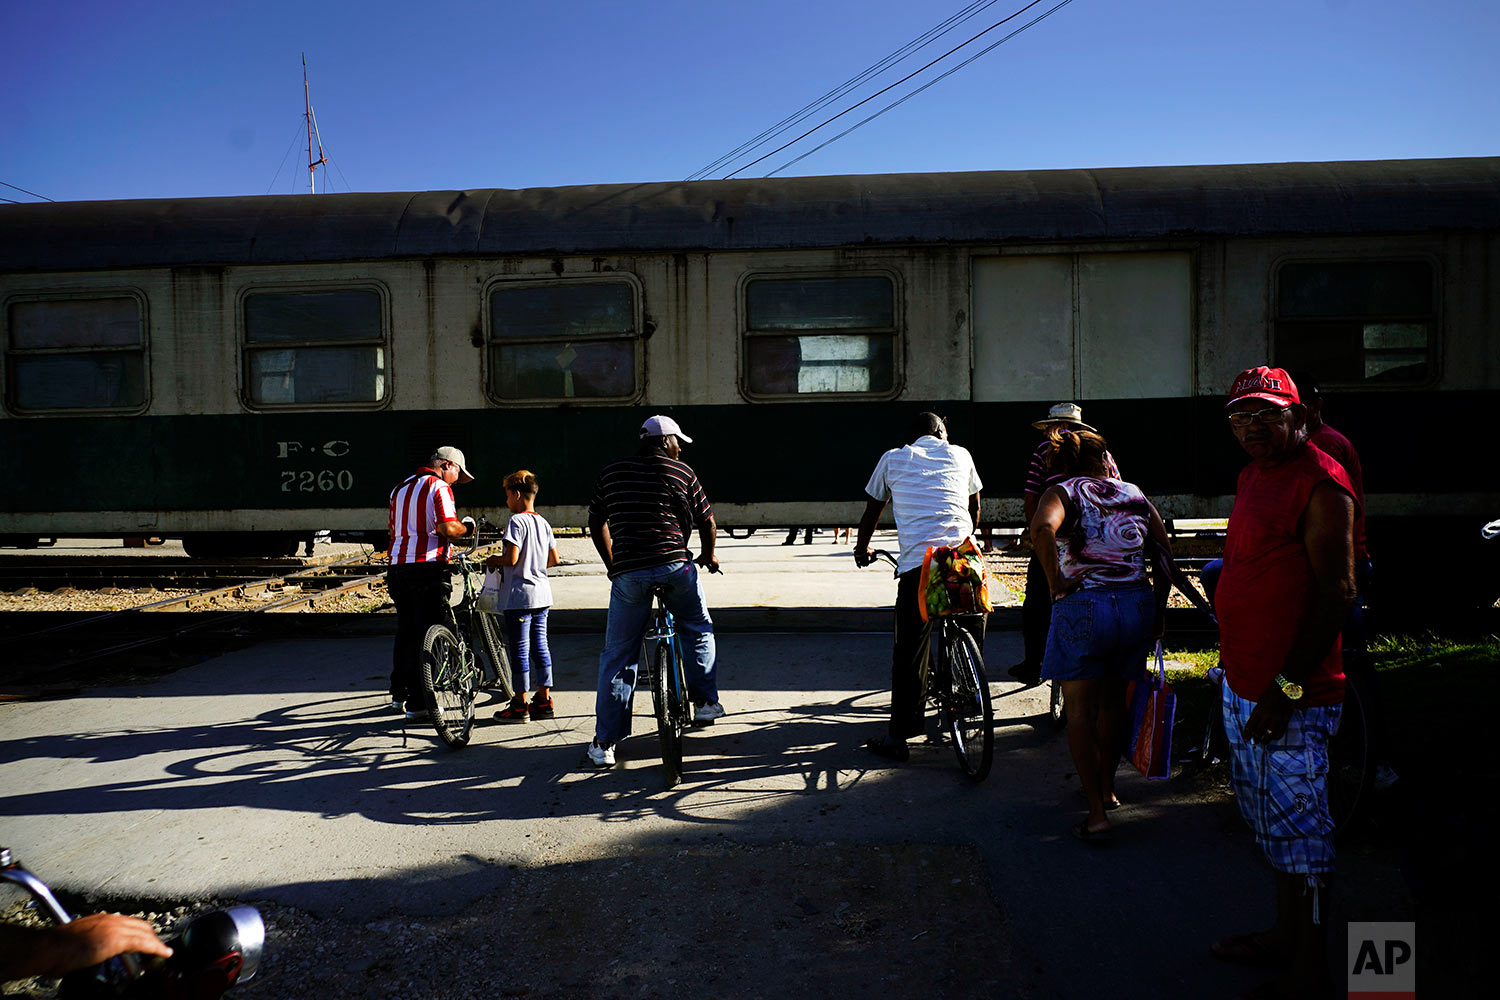 """Cubans wait for the """"El Guantanamero"""" train to move so they can cross the track in Guantanamo, Cuba,July 25, 2018."""